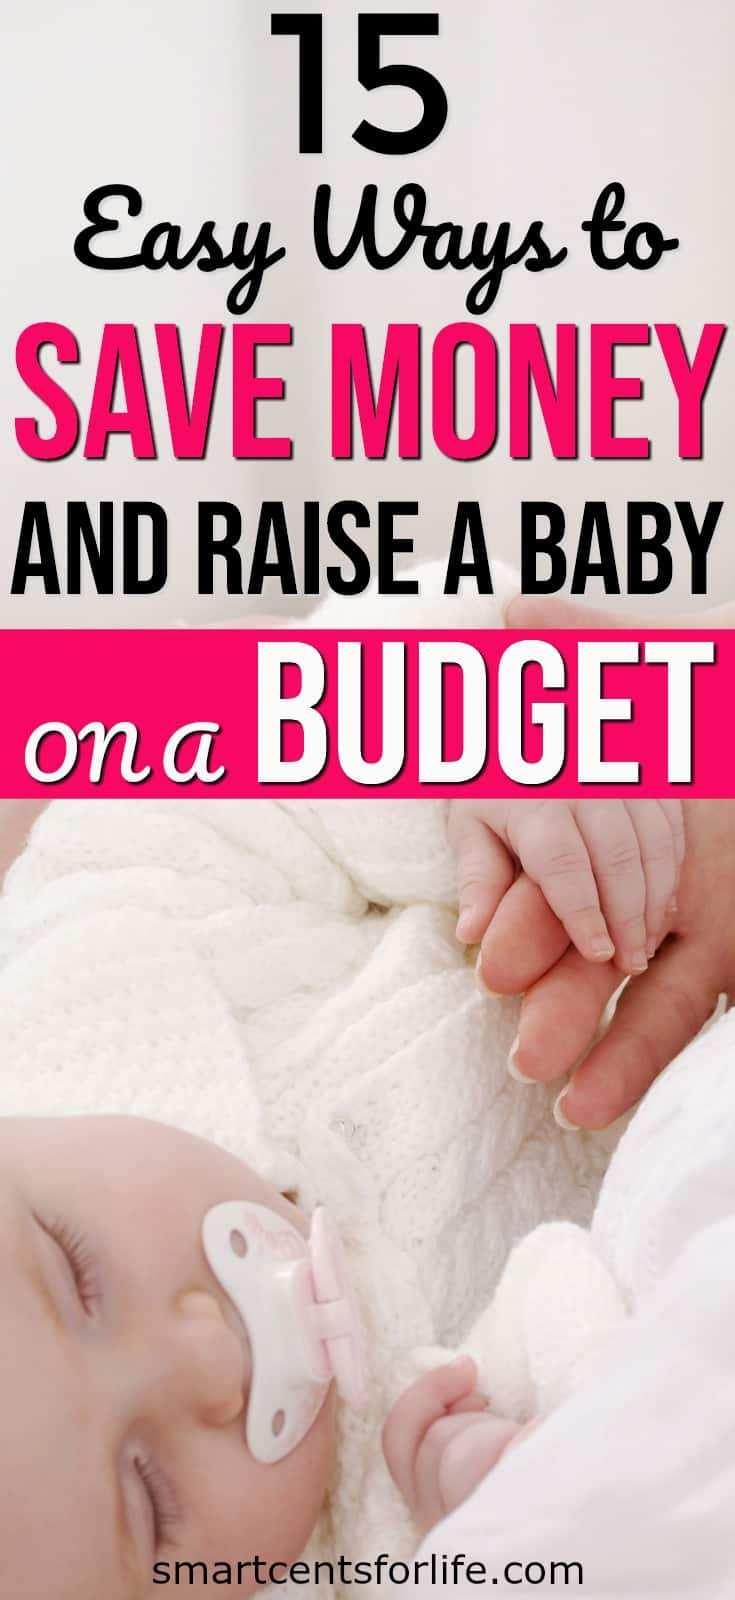 Whether you are a first-time mom or not learn how you can save money and raise a baby on a budget. Yes, having a baby on a small budget it's possible! This list will show you how you can prepare for a new baby on a tight budget. How to save money on a baby | baby on a budget | how to save money on baby items | frugal living tips